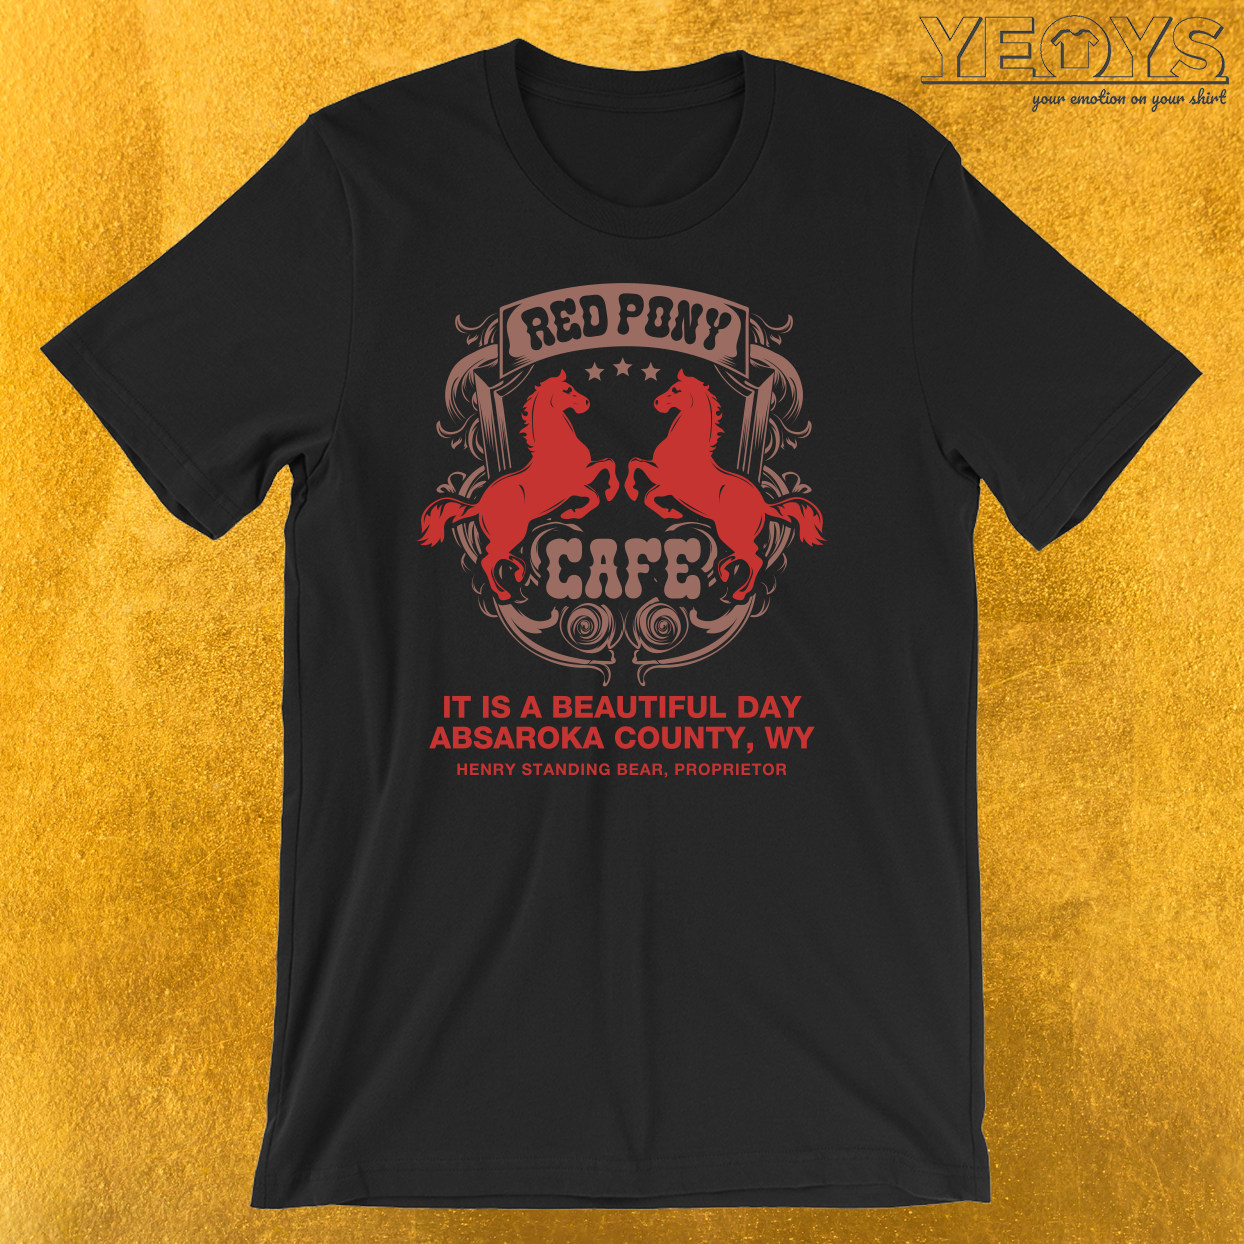 Red Pony Café T-Shirt